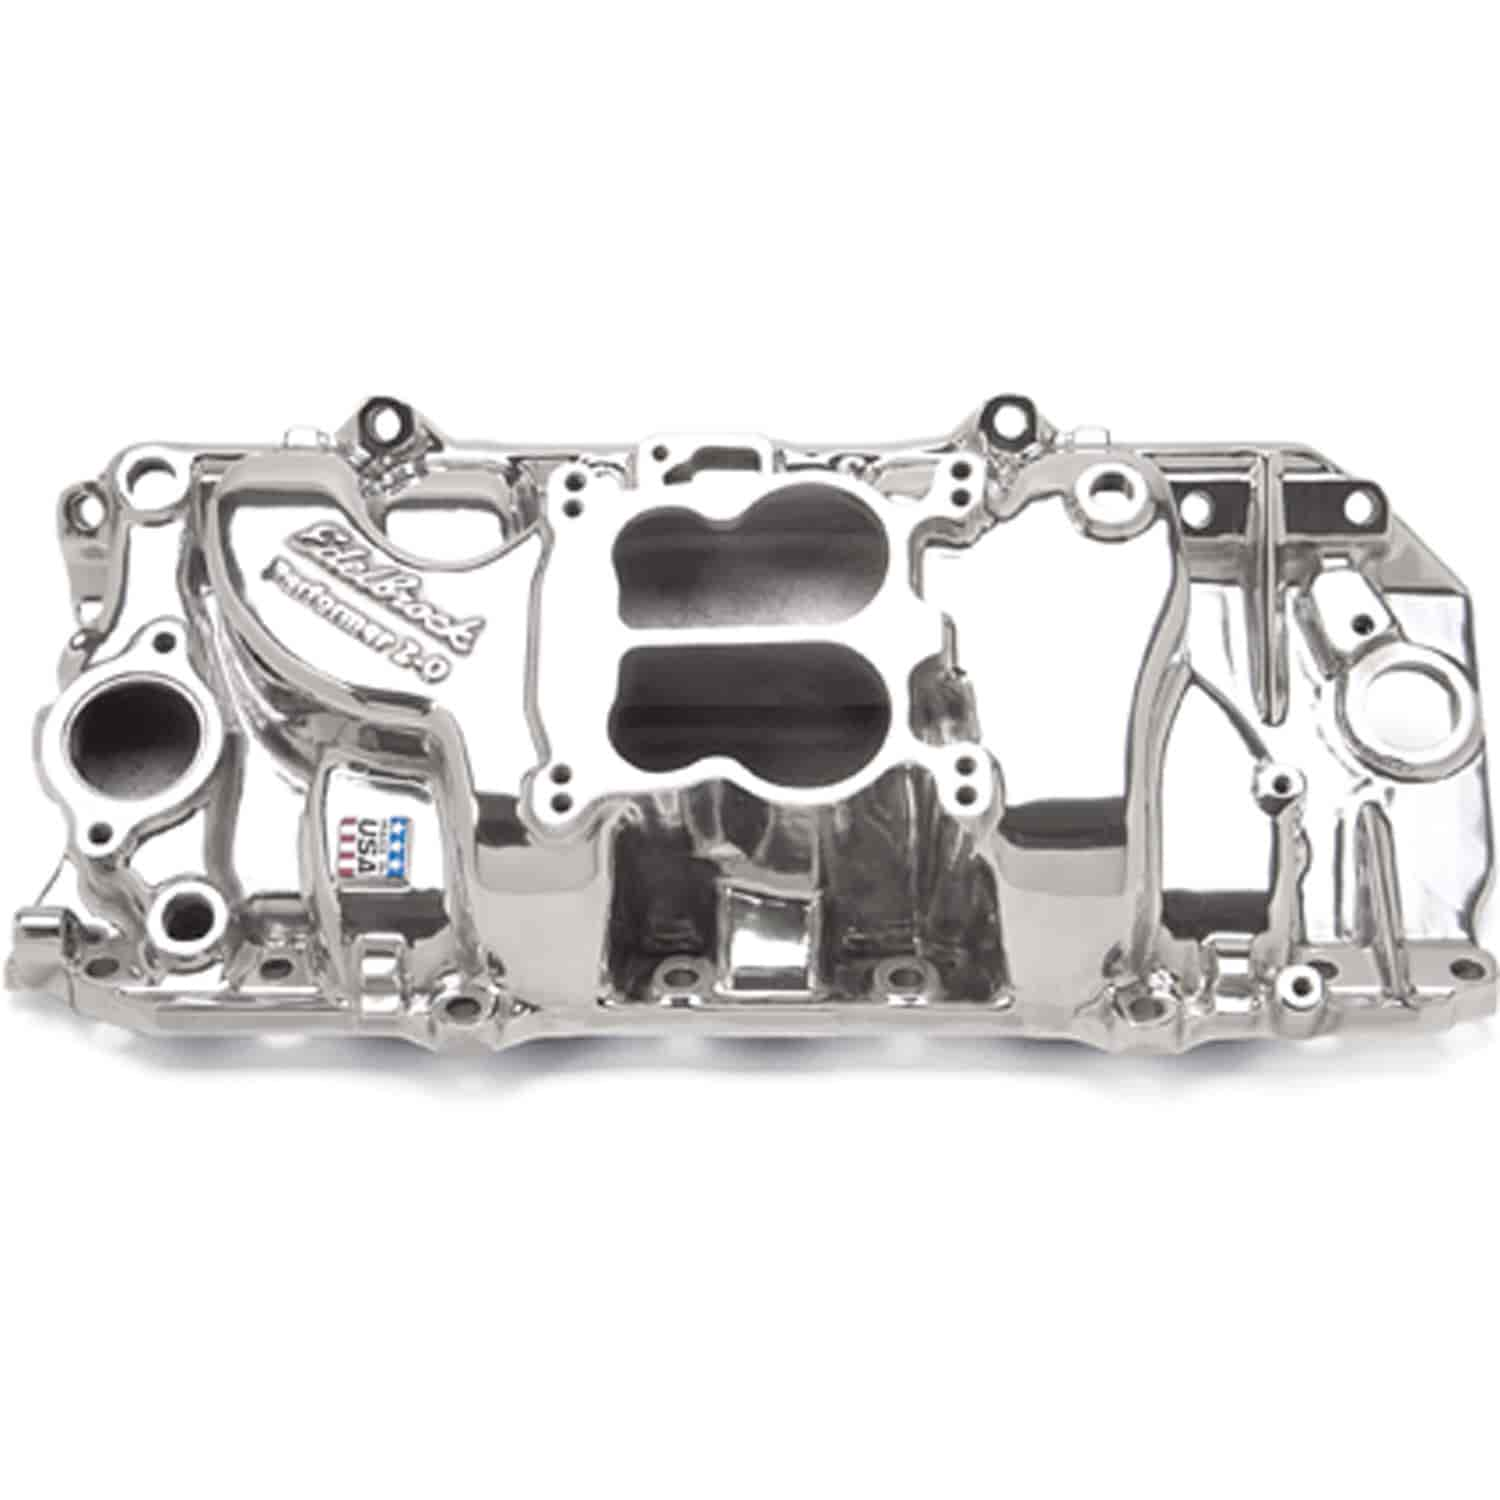 Edelbrock 21611 - Edelbrock Performer Intake Manifolds for Chevy